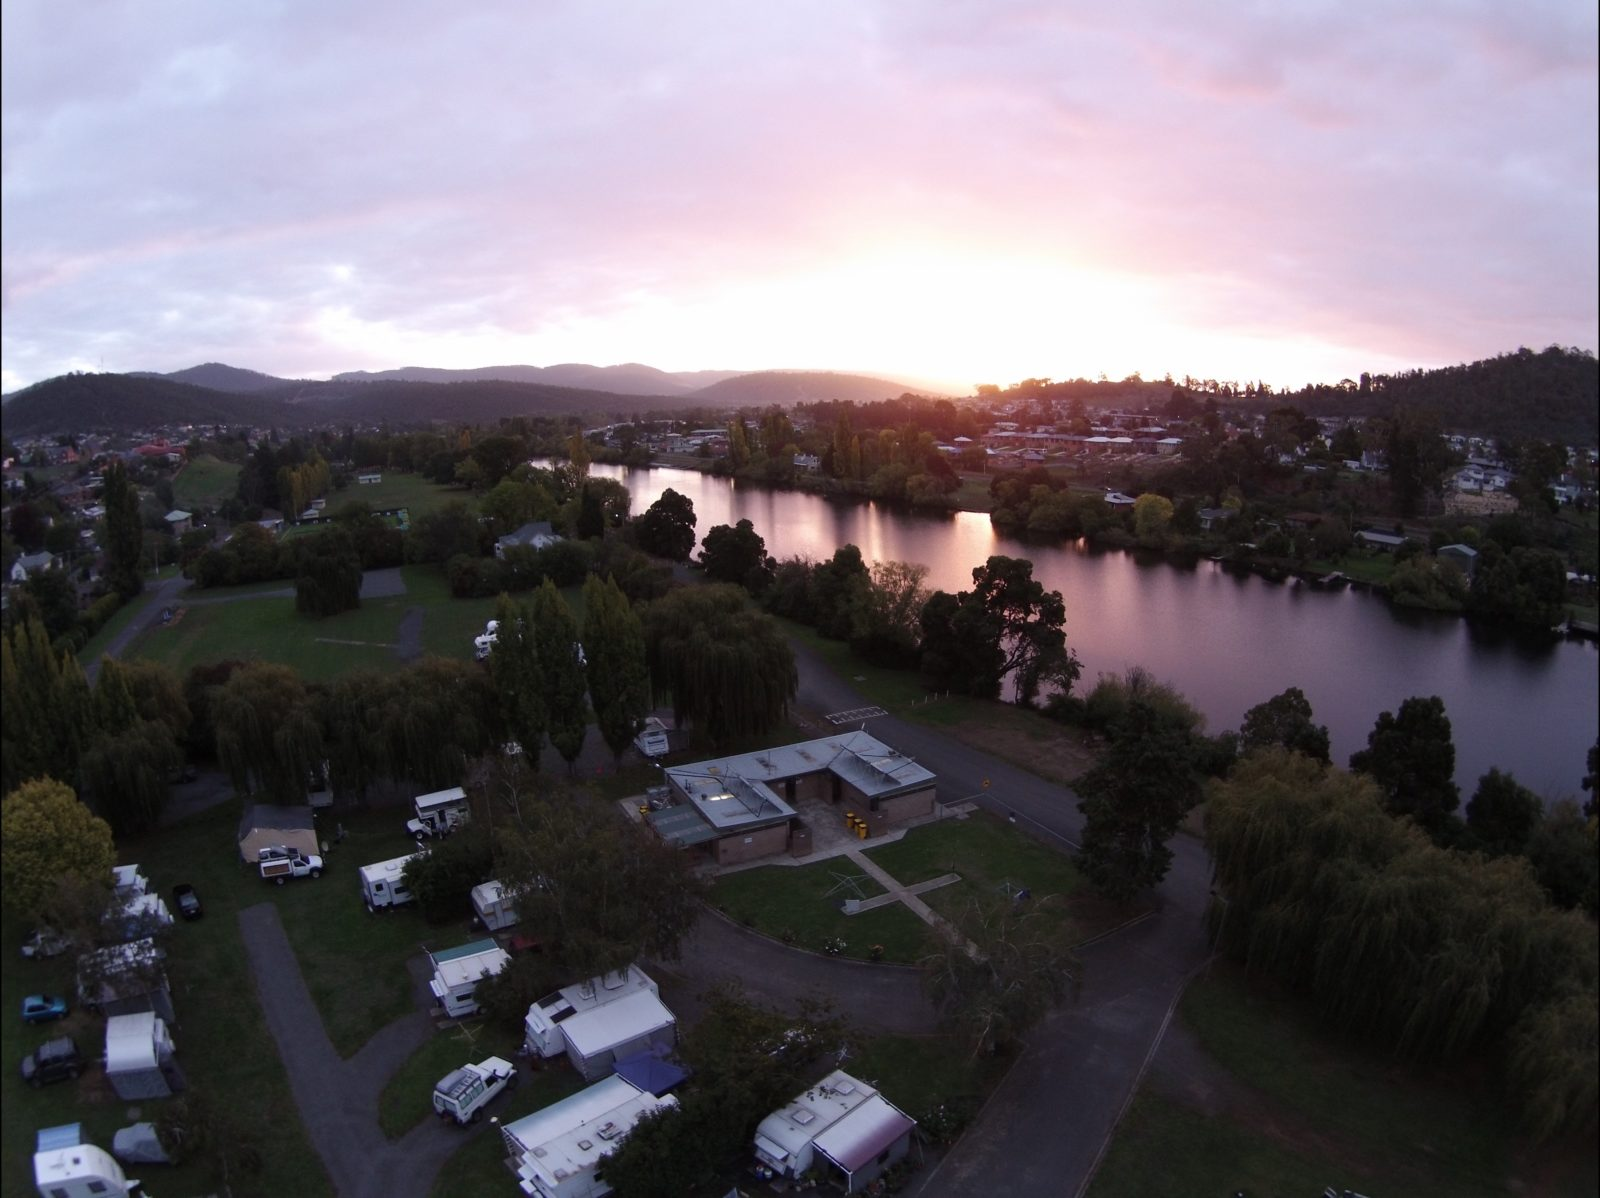 Sunset over the Derwent River